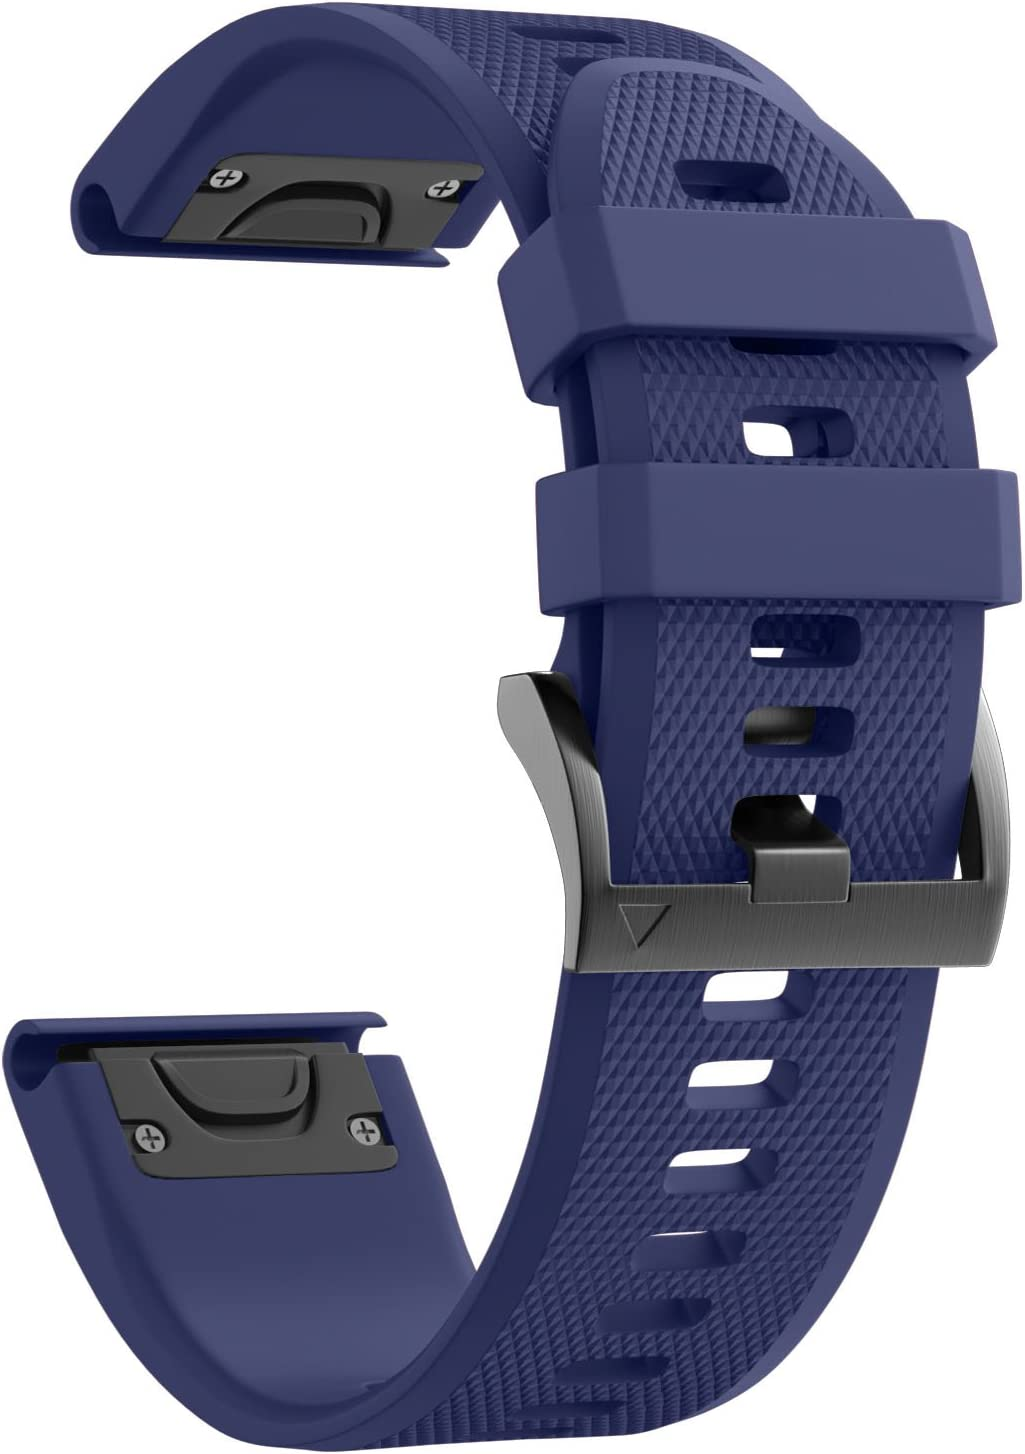 ANCOOL Compatible with Fenix 5 Band Easy Fit 22mm Width Soft Silicone Watch Strap Replacement for Fenix 5/Fenix 5 Plus/Forerunner 935/Approach S60/Quatix 5 - Dark Blue